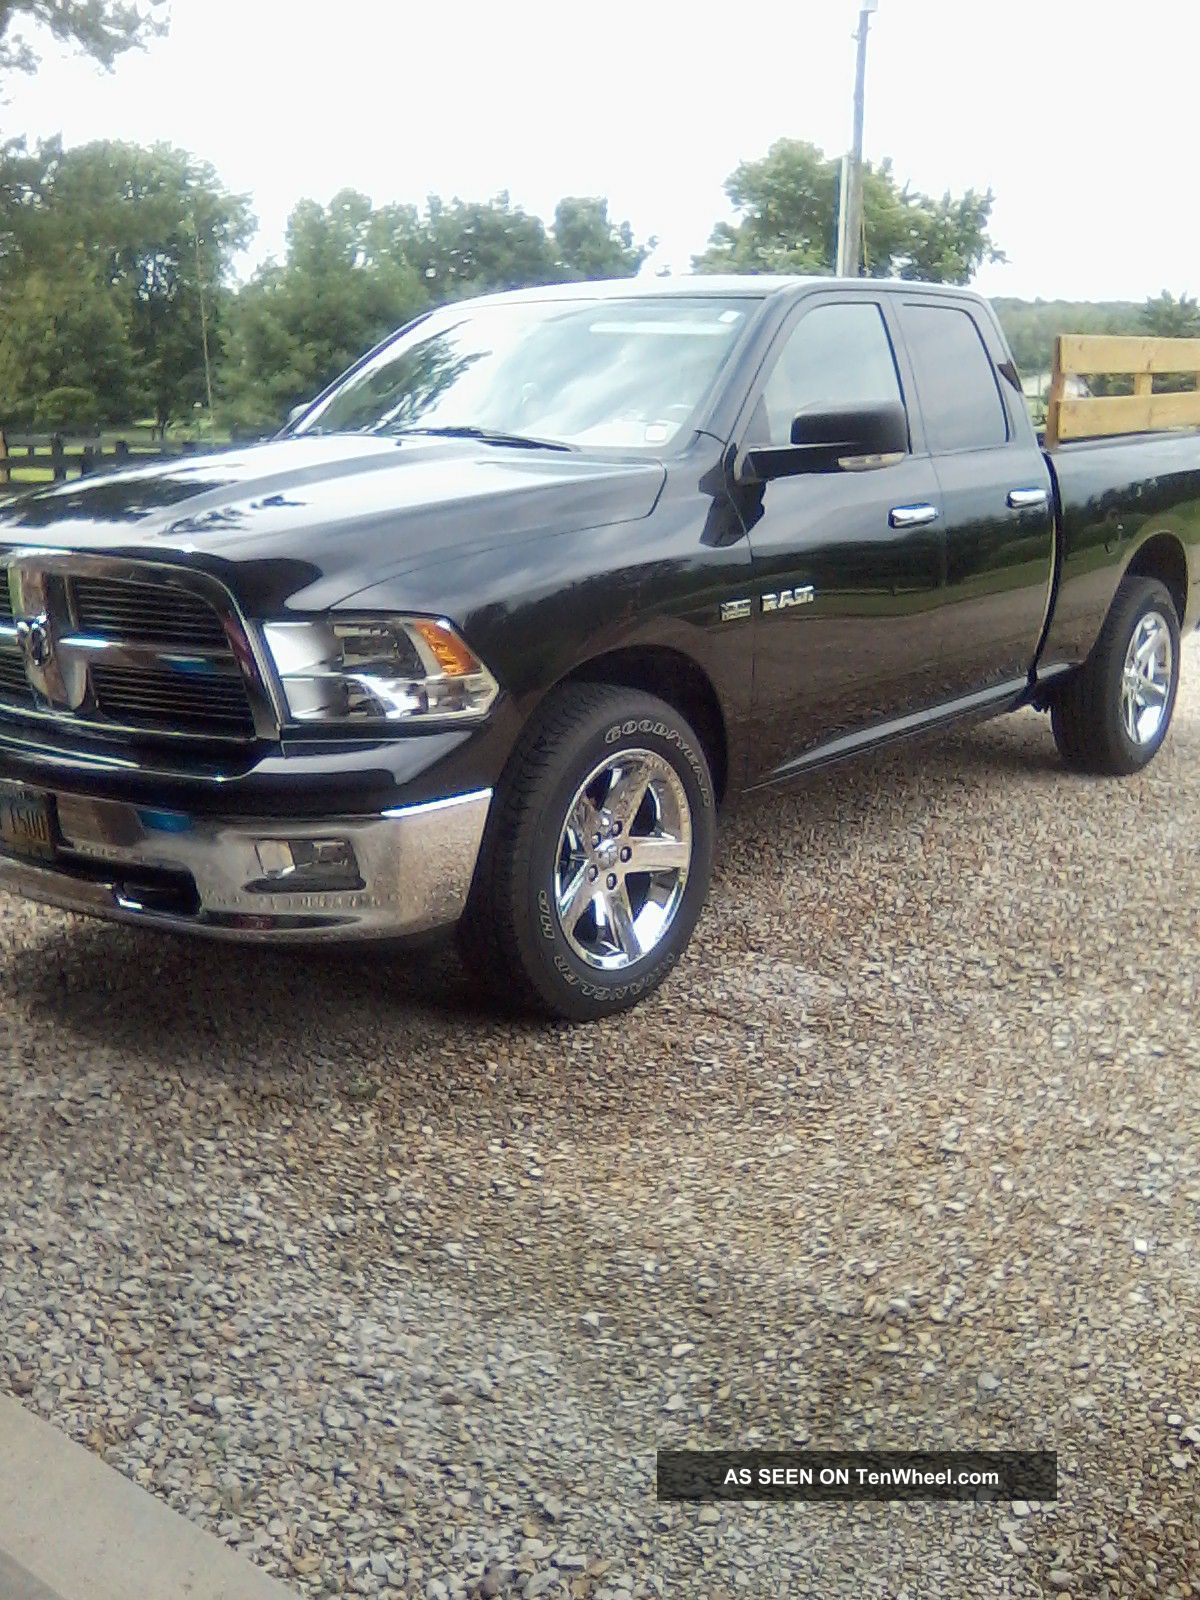 2010 dodge ram 1500 quad cab big horn 5 7 hemi 4x4. Black Bedroom Furniture Sets. Home Design Ideas